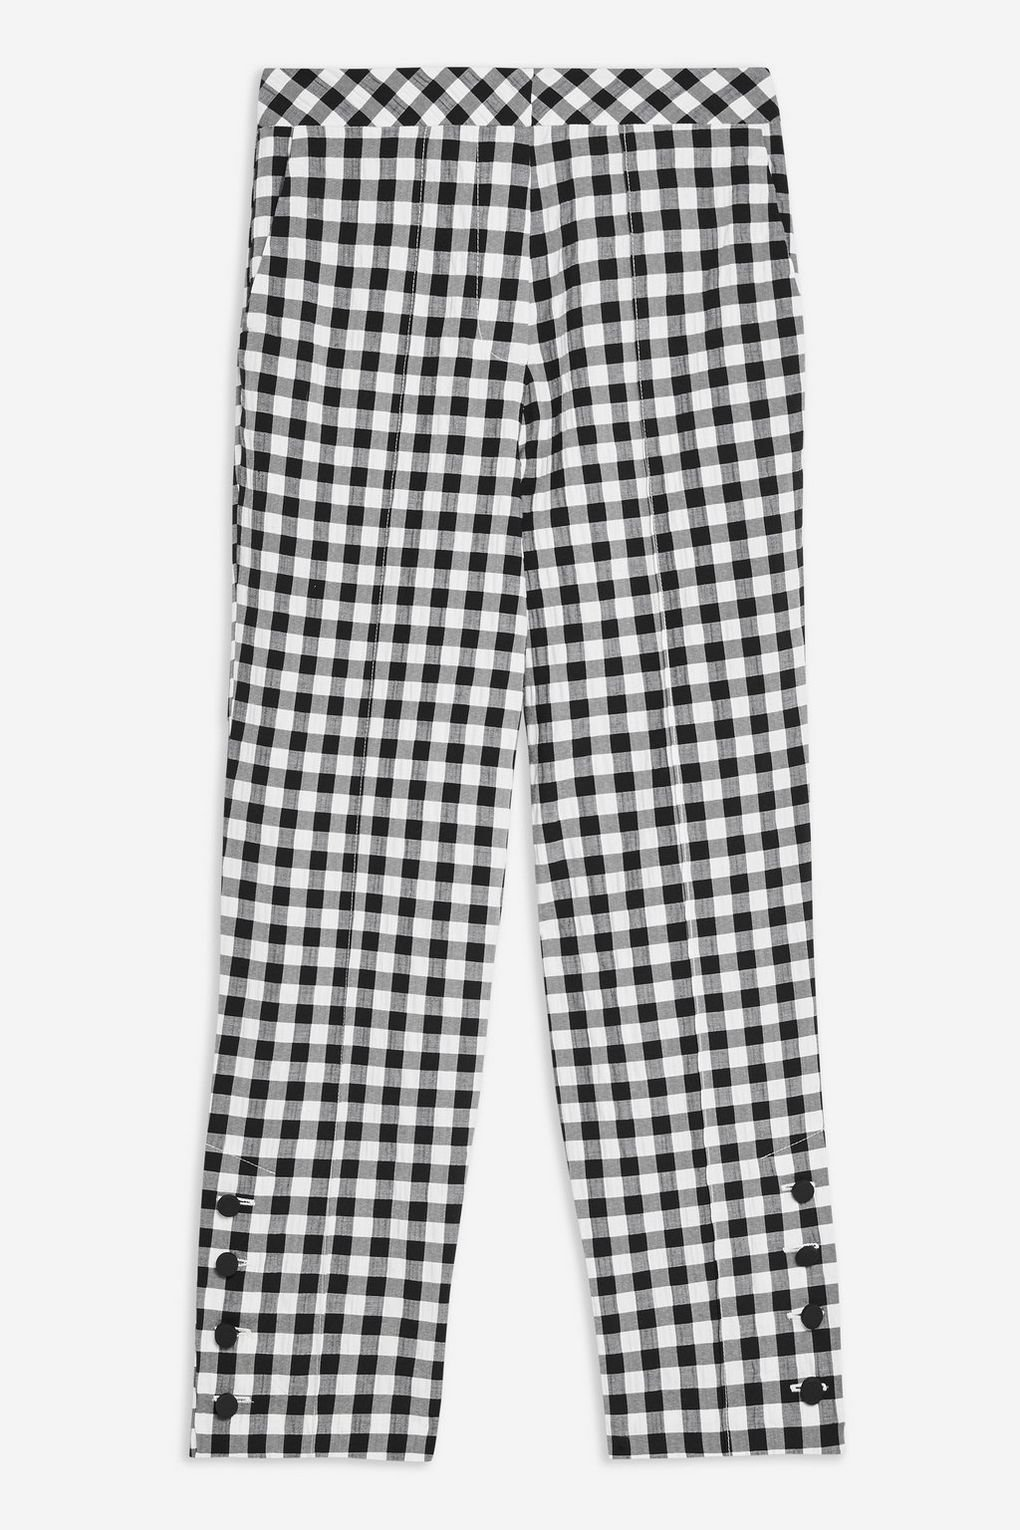 Gingham Tapered Trousers - New In Fashion - New In - Topshop USA